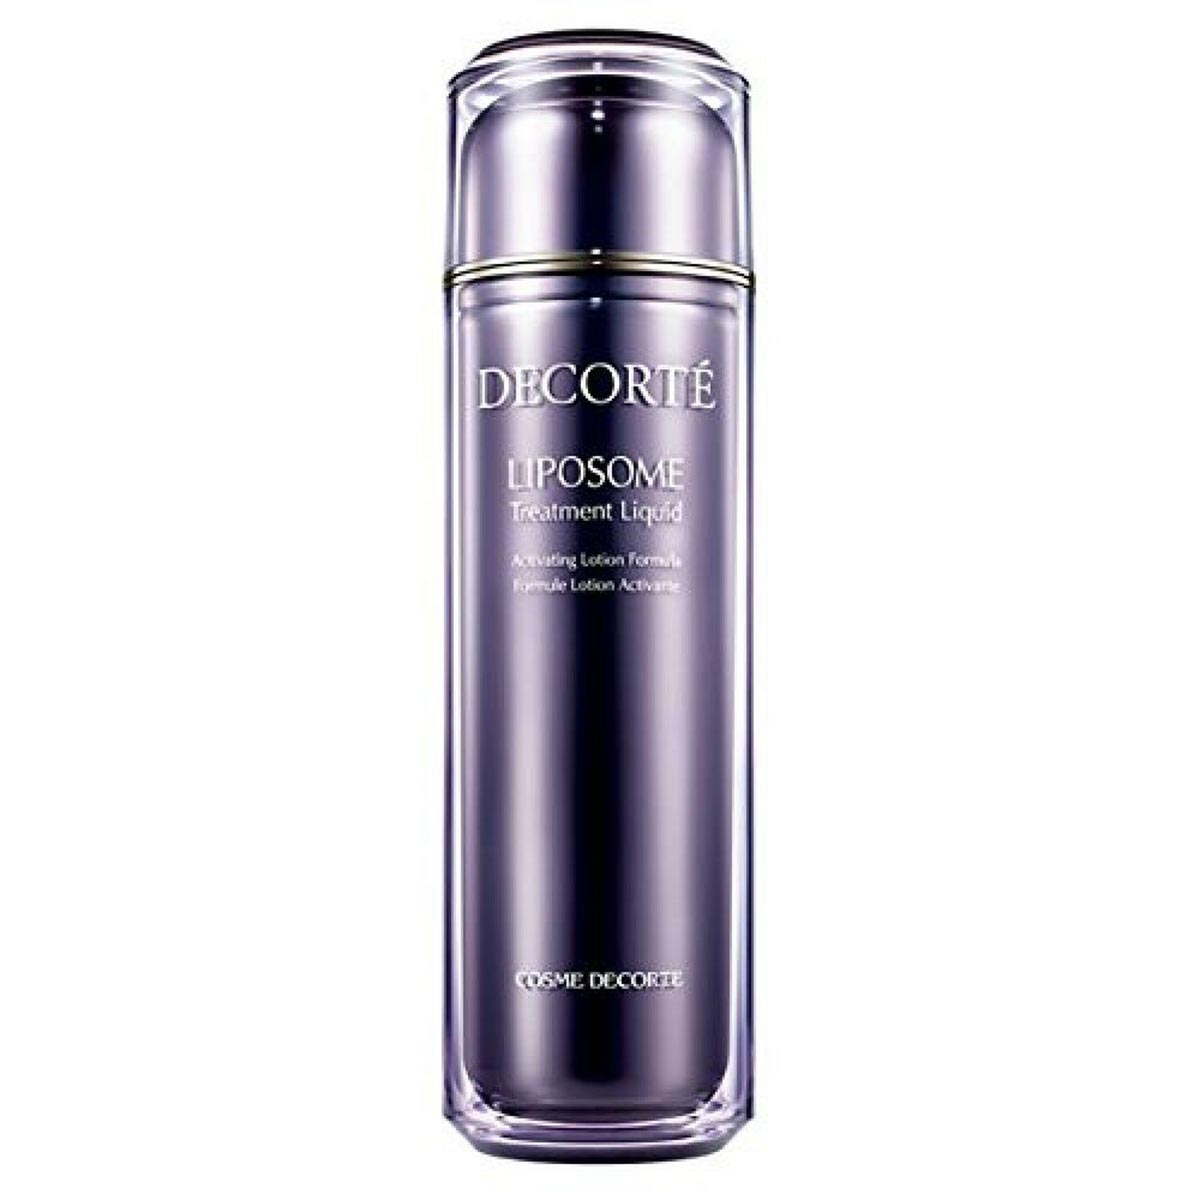 Cosme decorte liposome treatment liquid 170ml